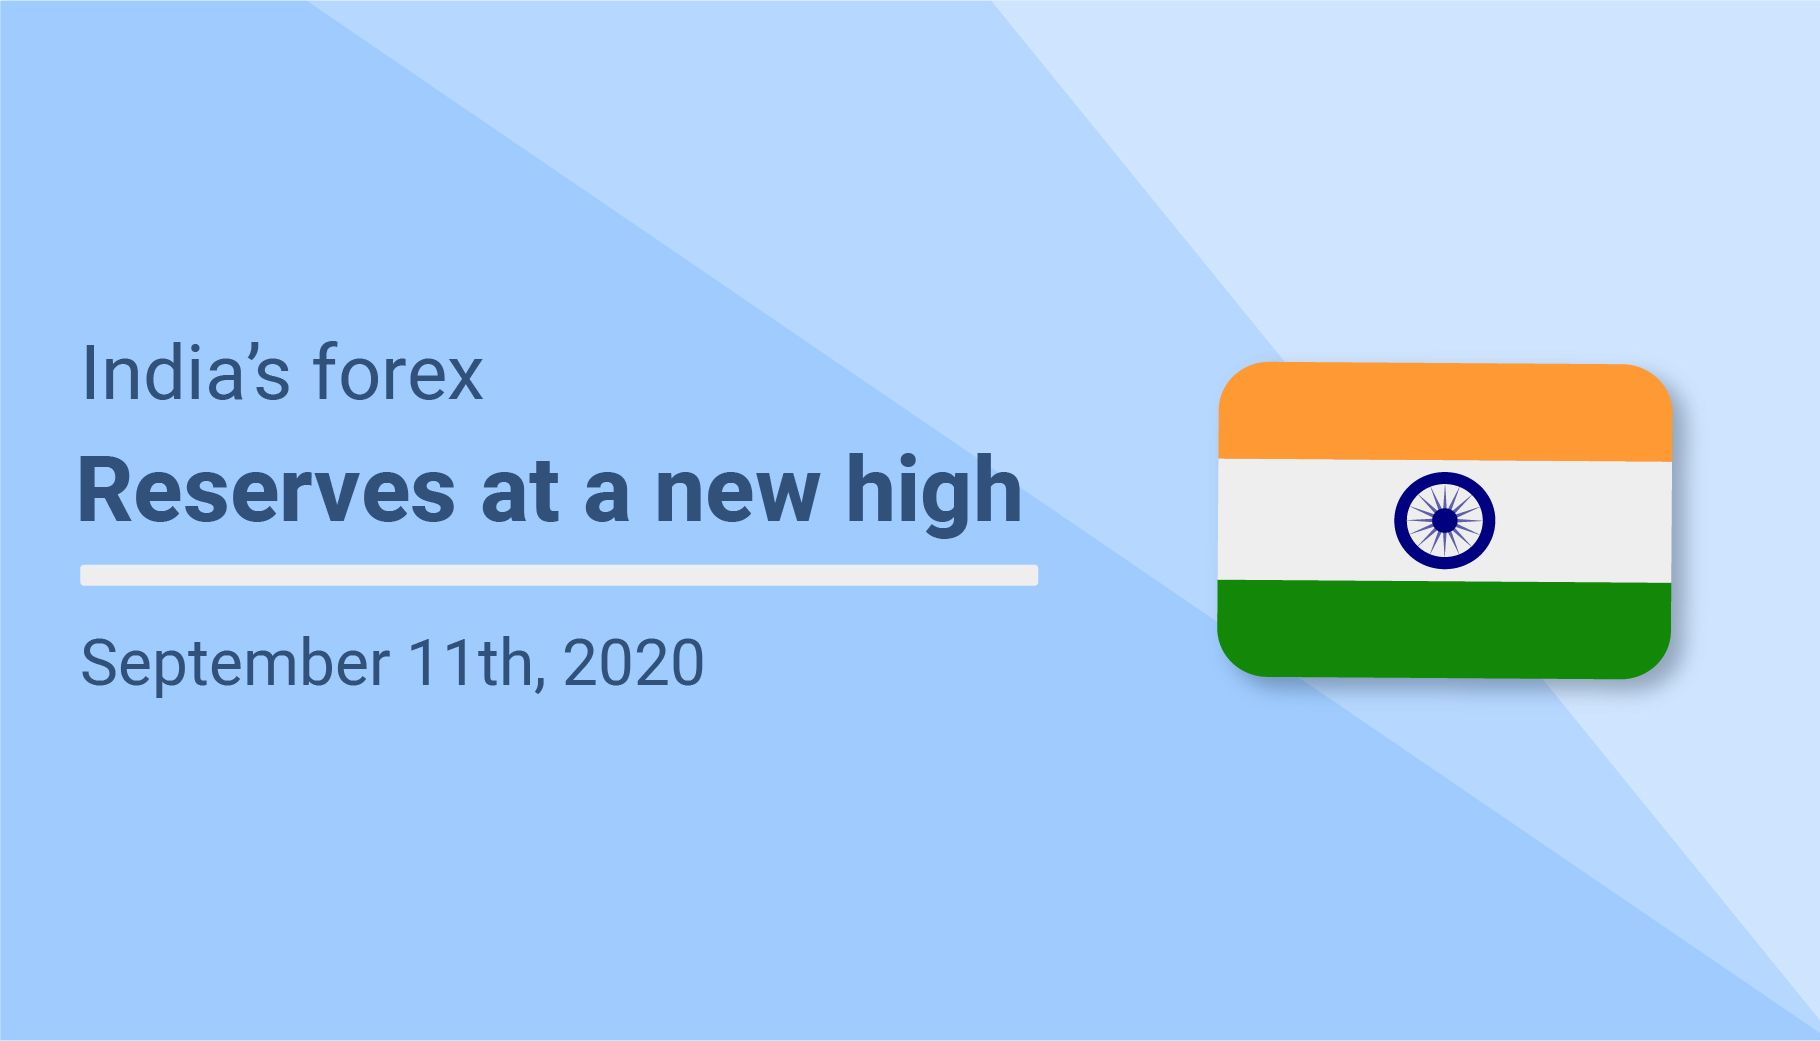 India's forex reserves at a new high